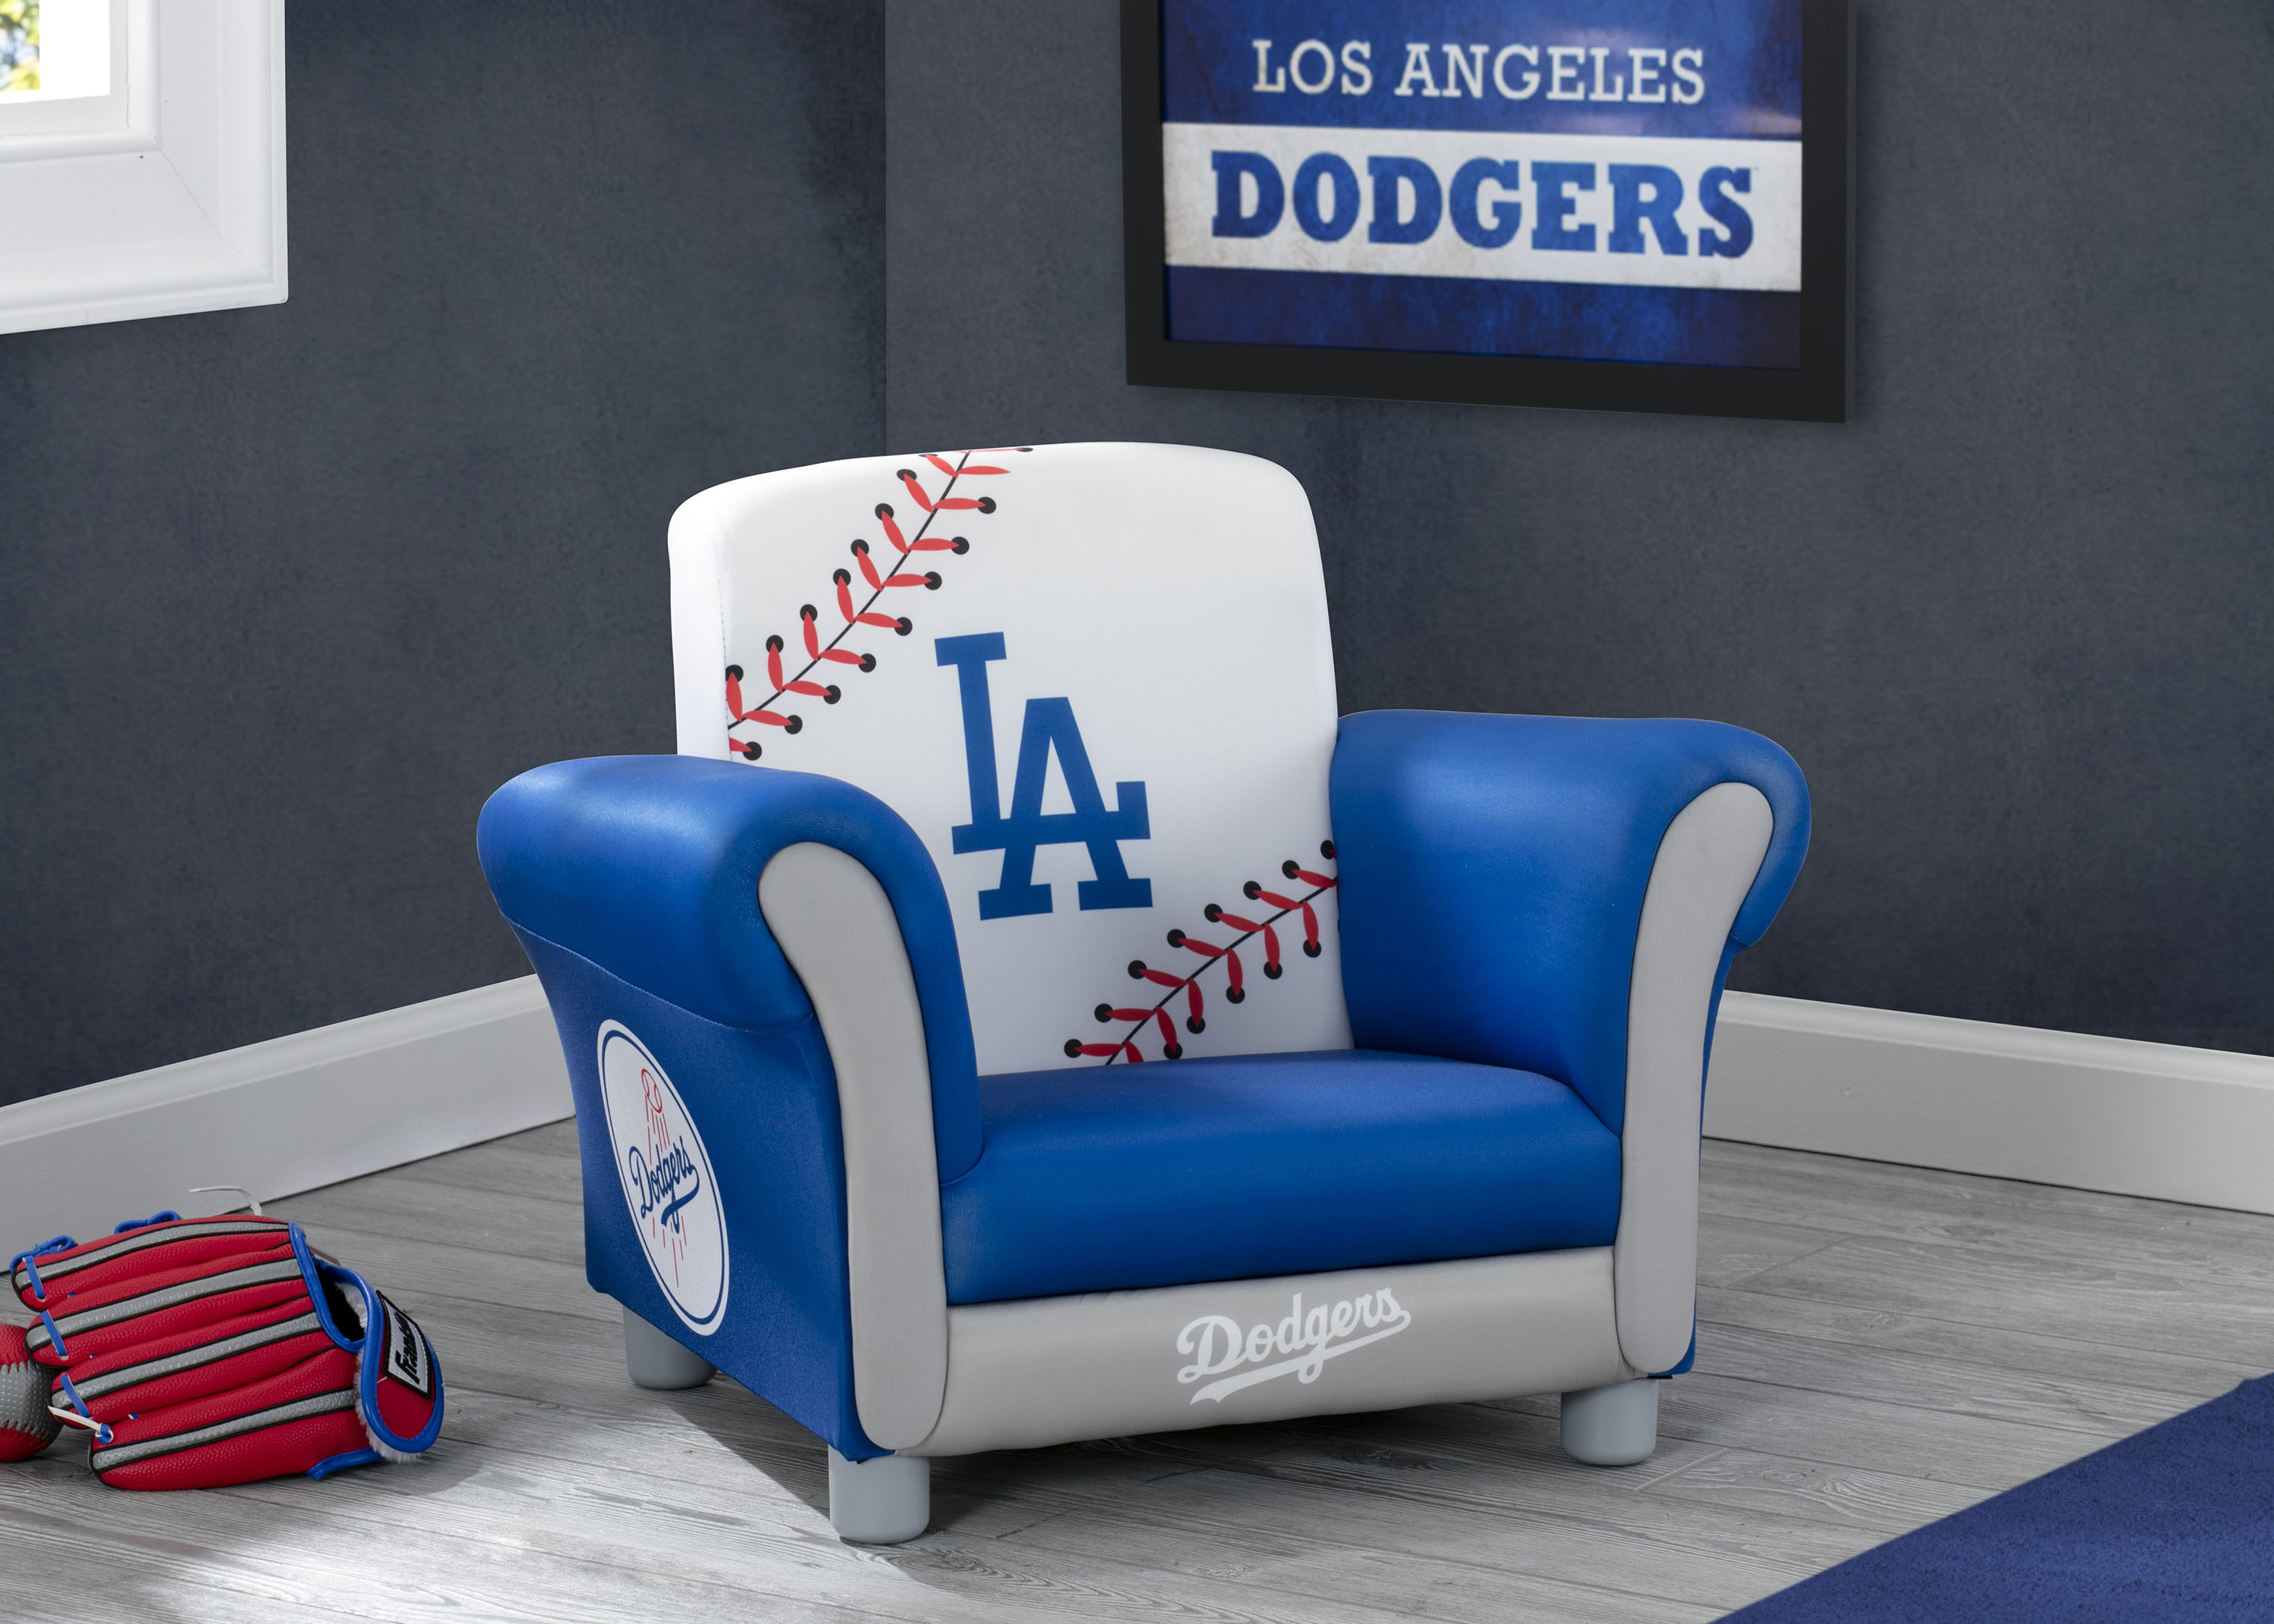 1d9b4ac20021 MLB Los Angeles Dodgers Kids Upholstered Chair by Delta Children -  Walmart.com